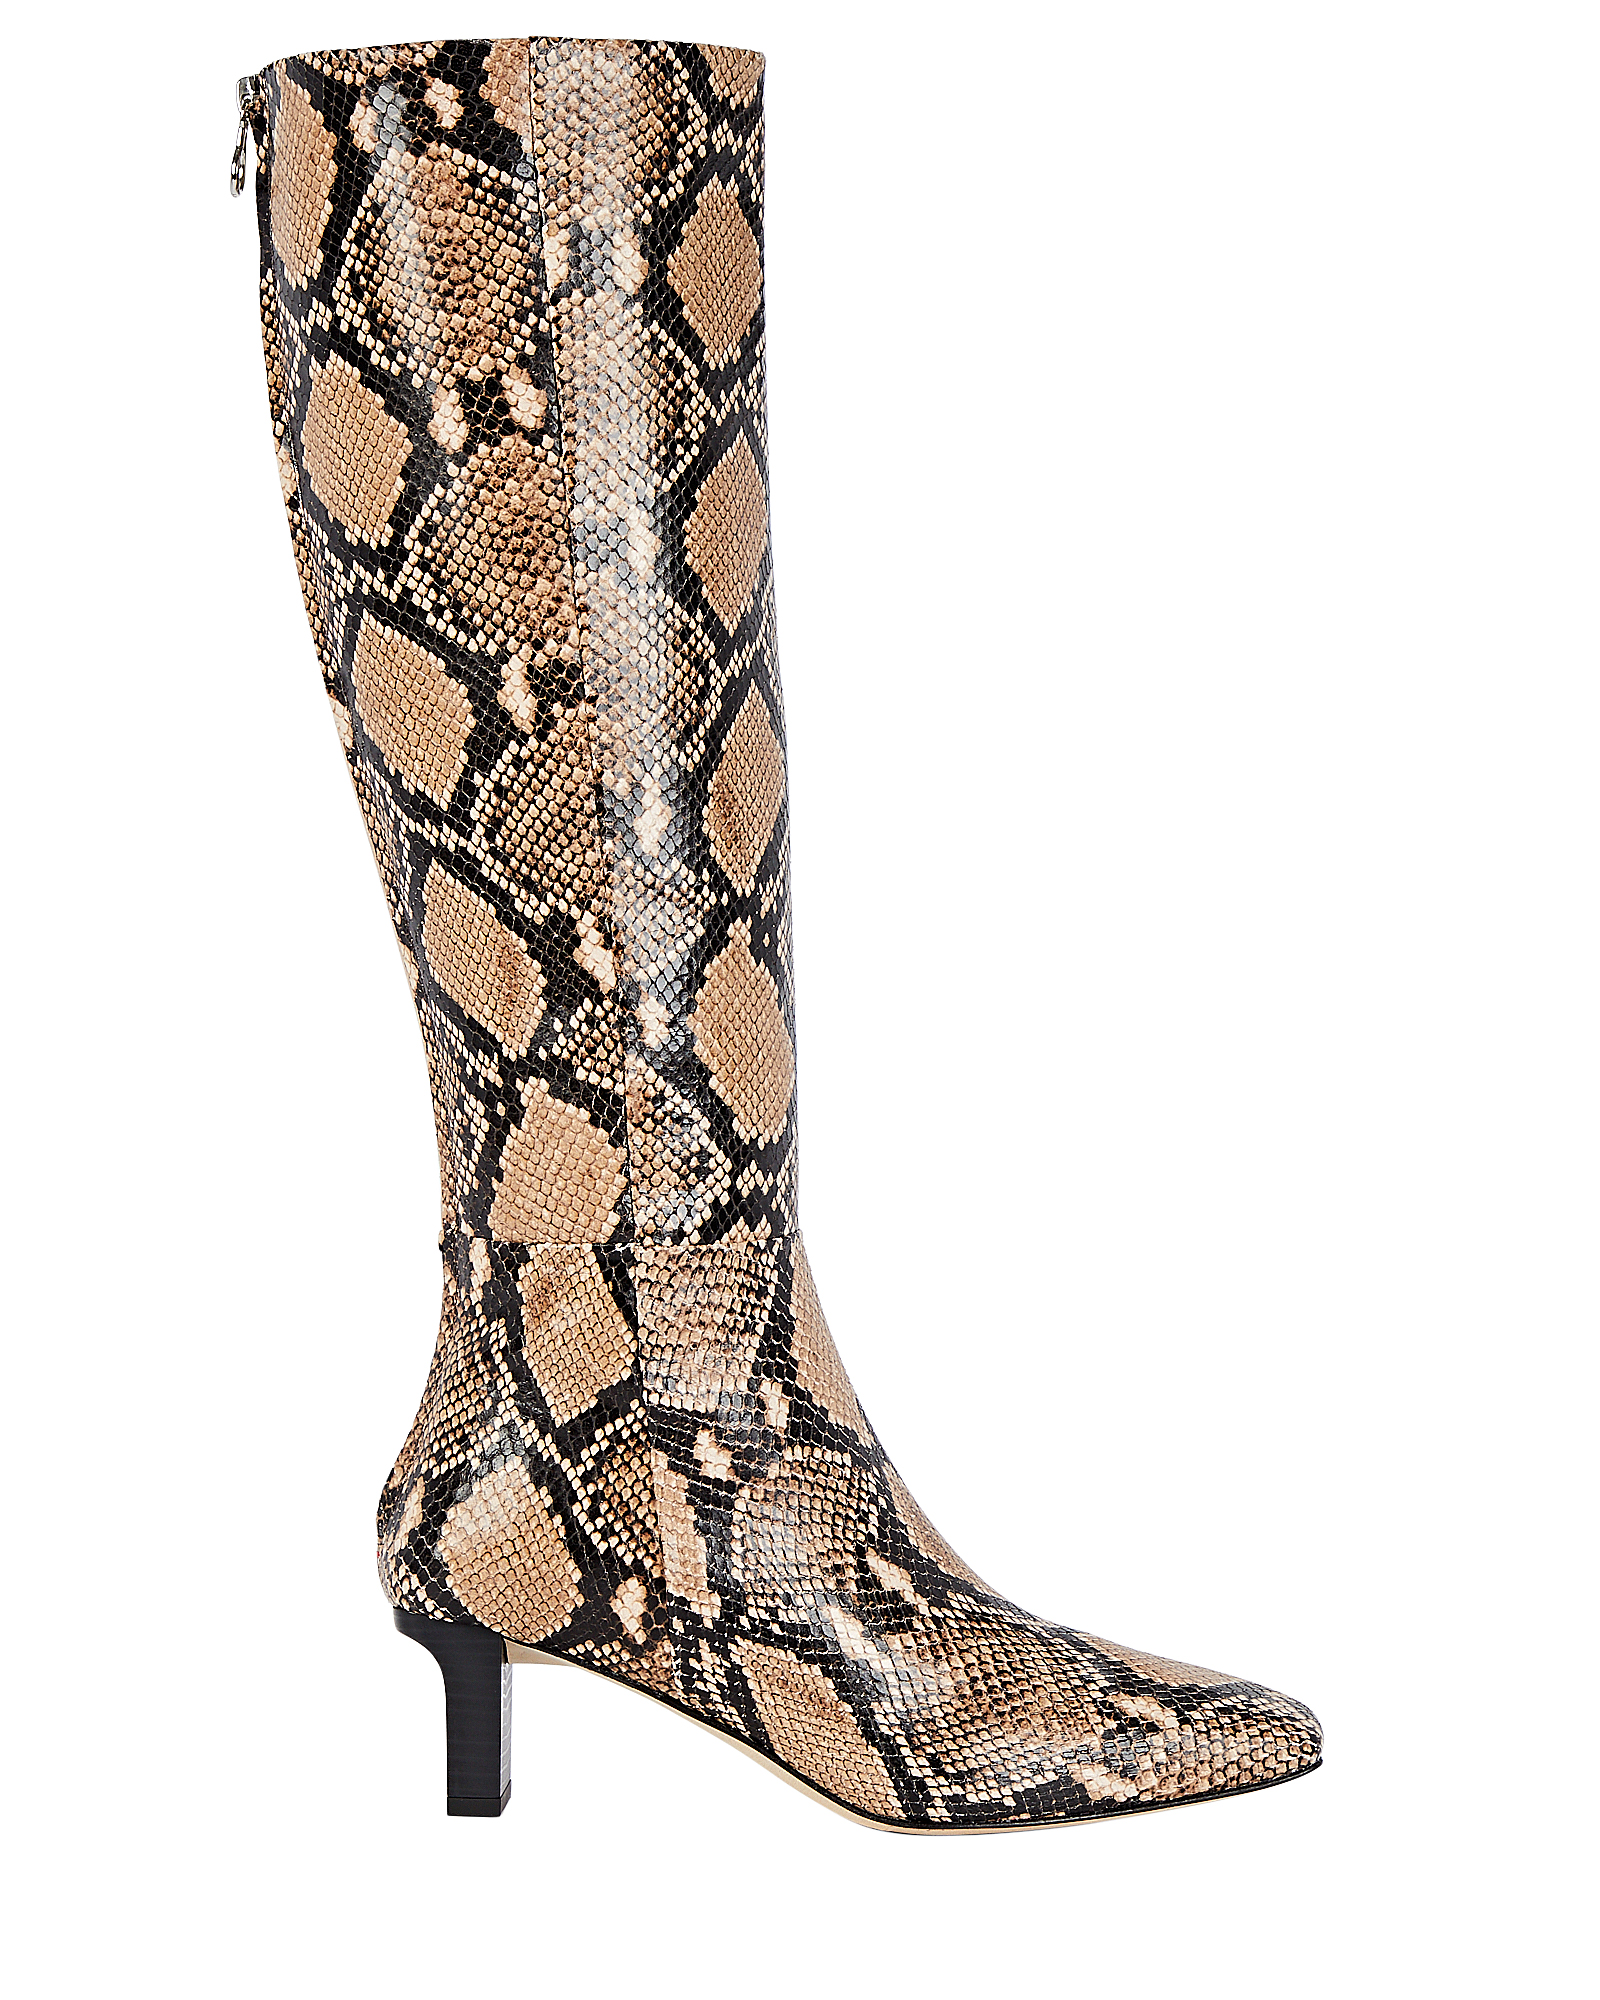 Aeyde AEYDE CICELY PYTHON-EMBOSSED KNEE-HIGH BOOTS